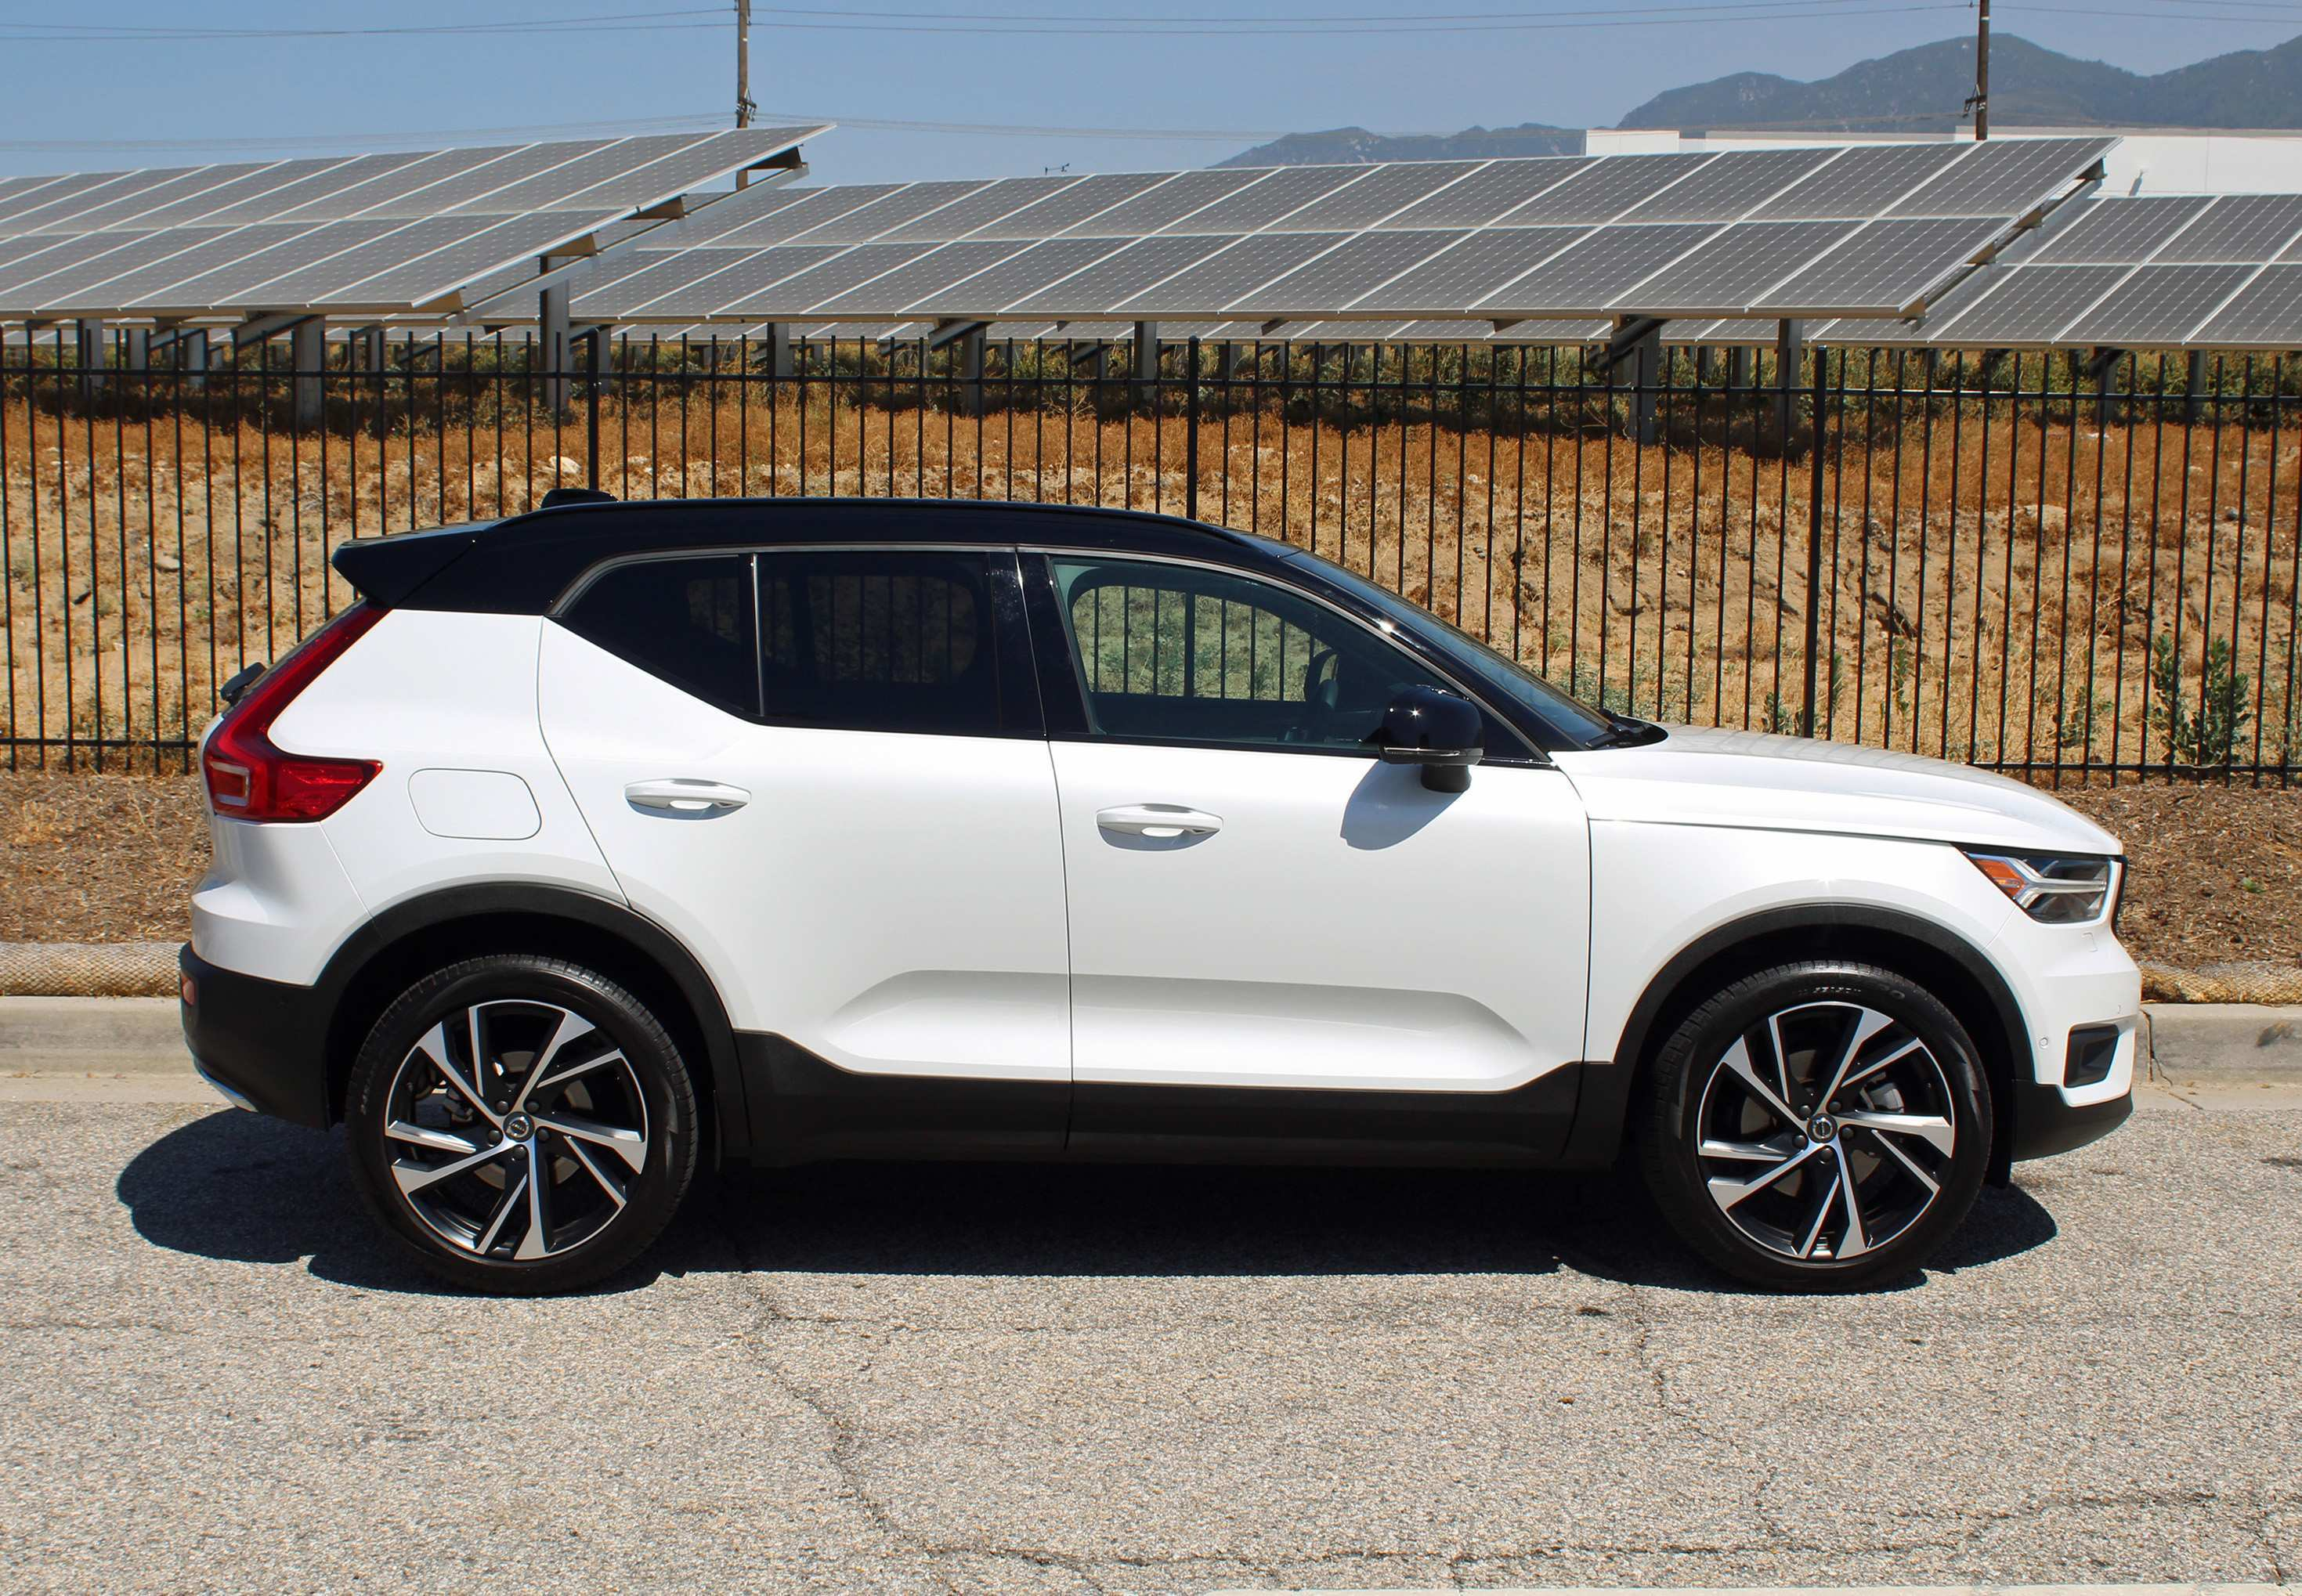 29 New 2019 Volvo Xc40 Gas Mileage Specs by 2019 Volvo Xc40 Gas Mileage